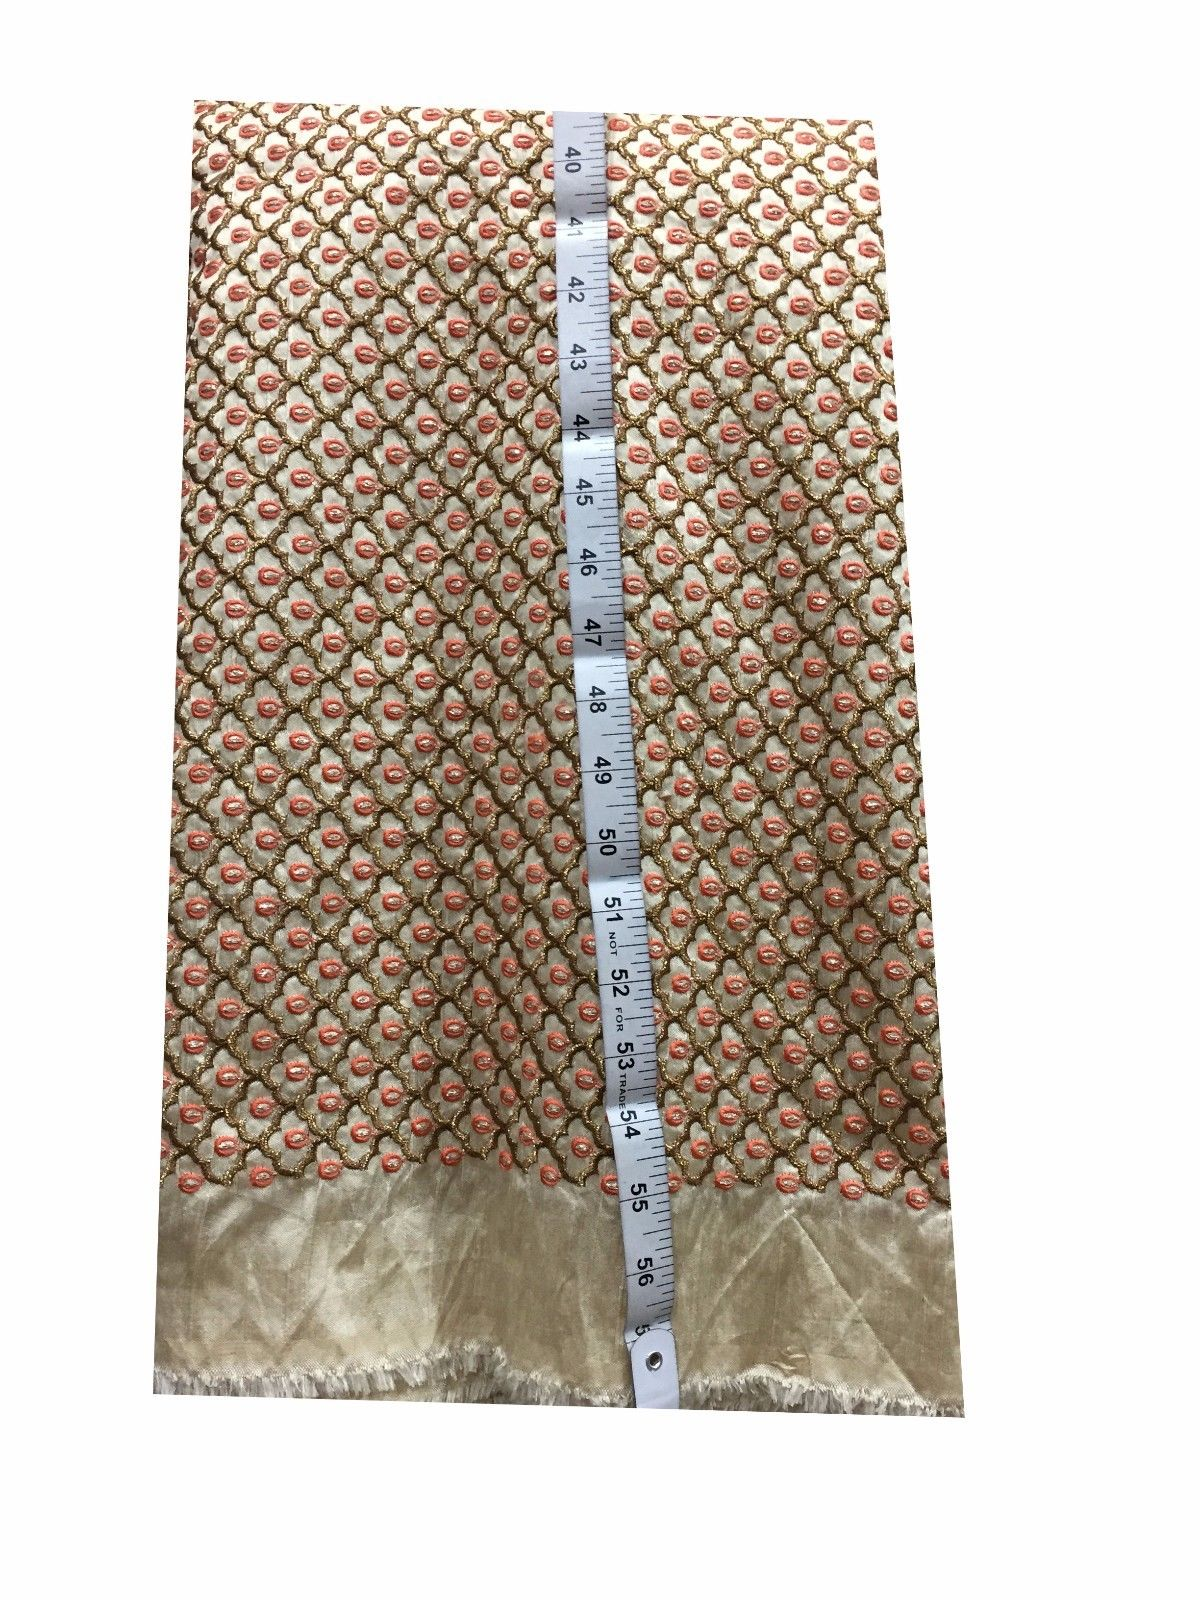 buy kurti fabric online designer fabric online india Embroidered Dupion Silk Beige, Bronze, Pink, Copper 42 inches Wide 8065